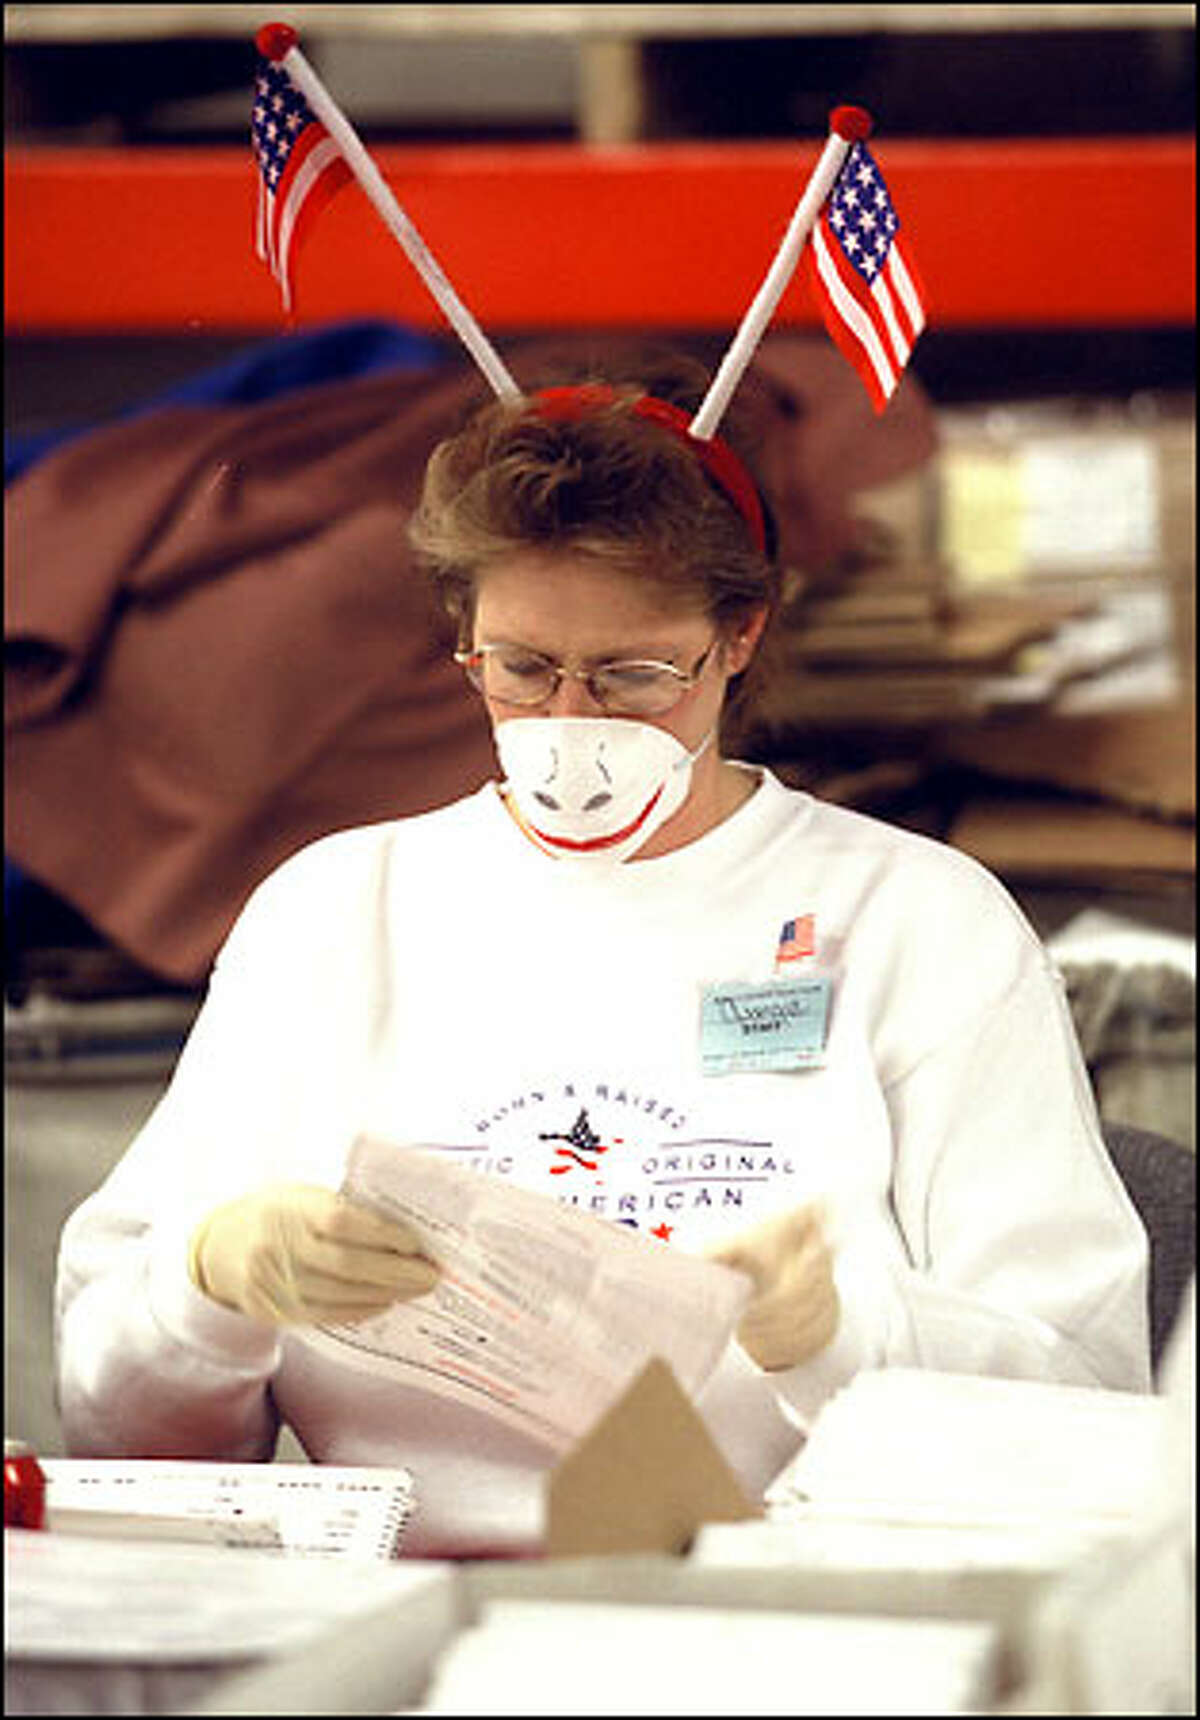 At the Mail Ballot Operation site in South Seattle, Georgia White makes the best out of having to wear a mask and surgical gloves because of anthrax concerns. White and her colleagues were the first to open and inspect mail in ballots for yesterday's election.